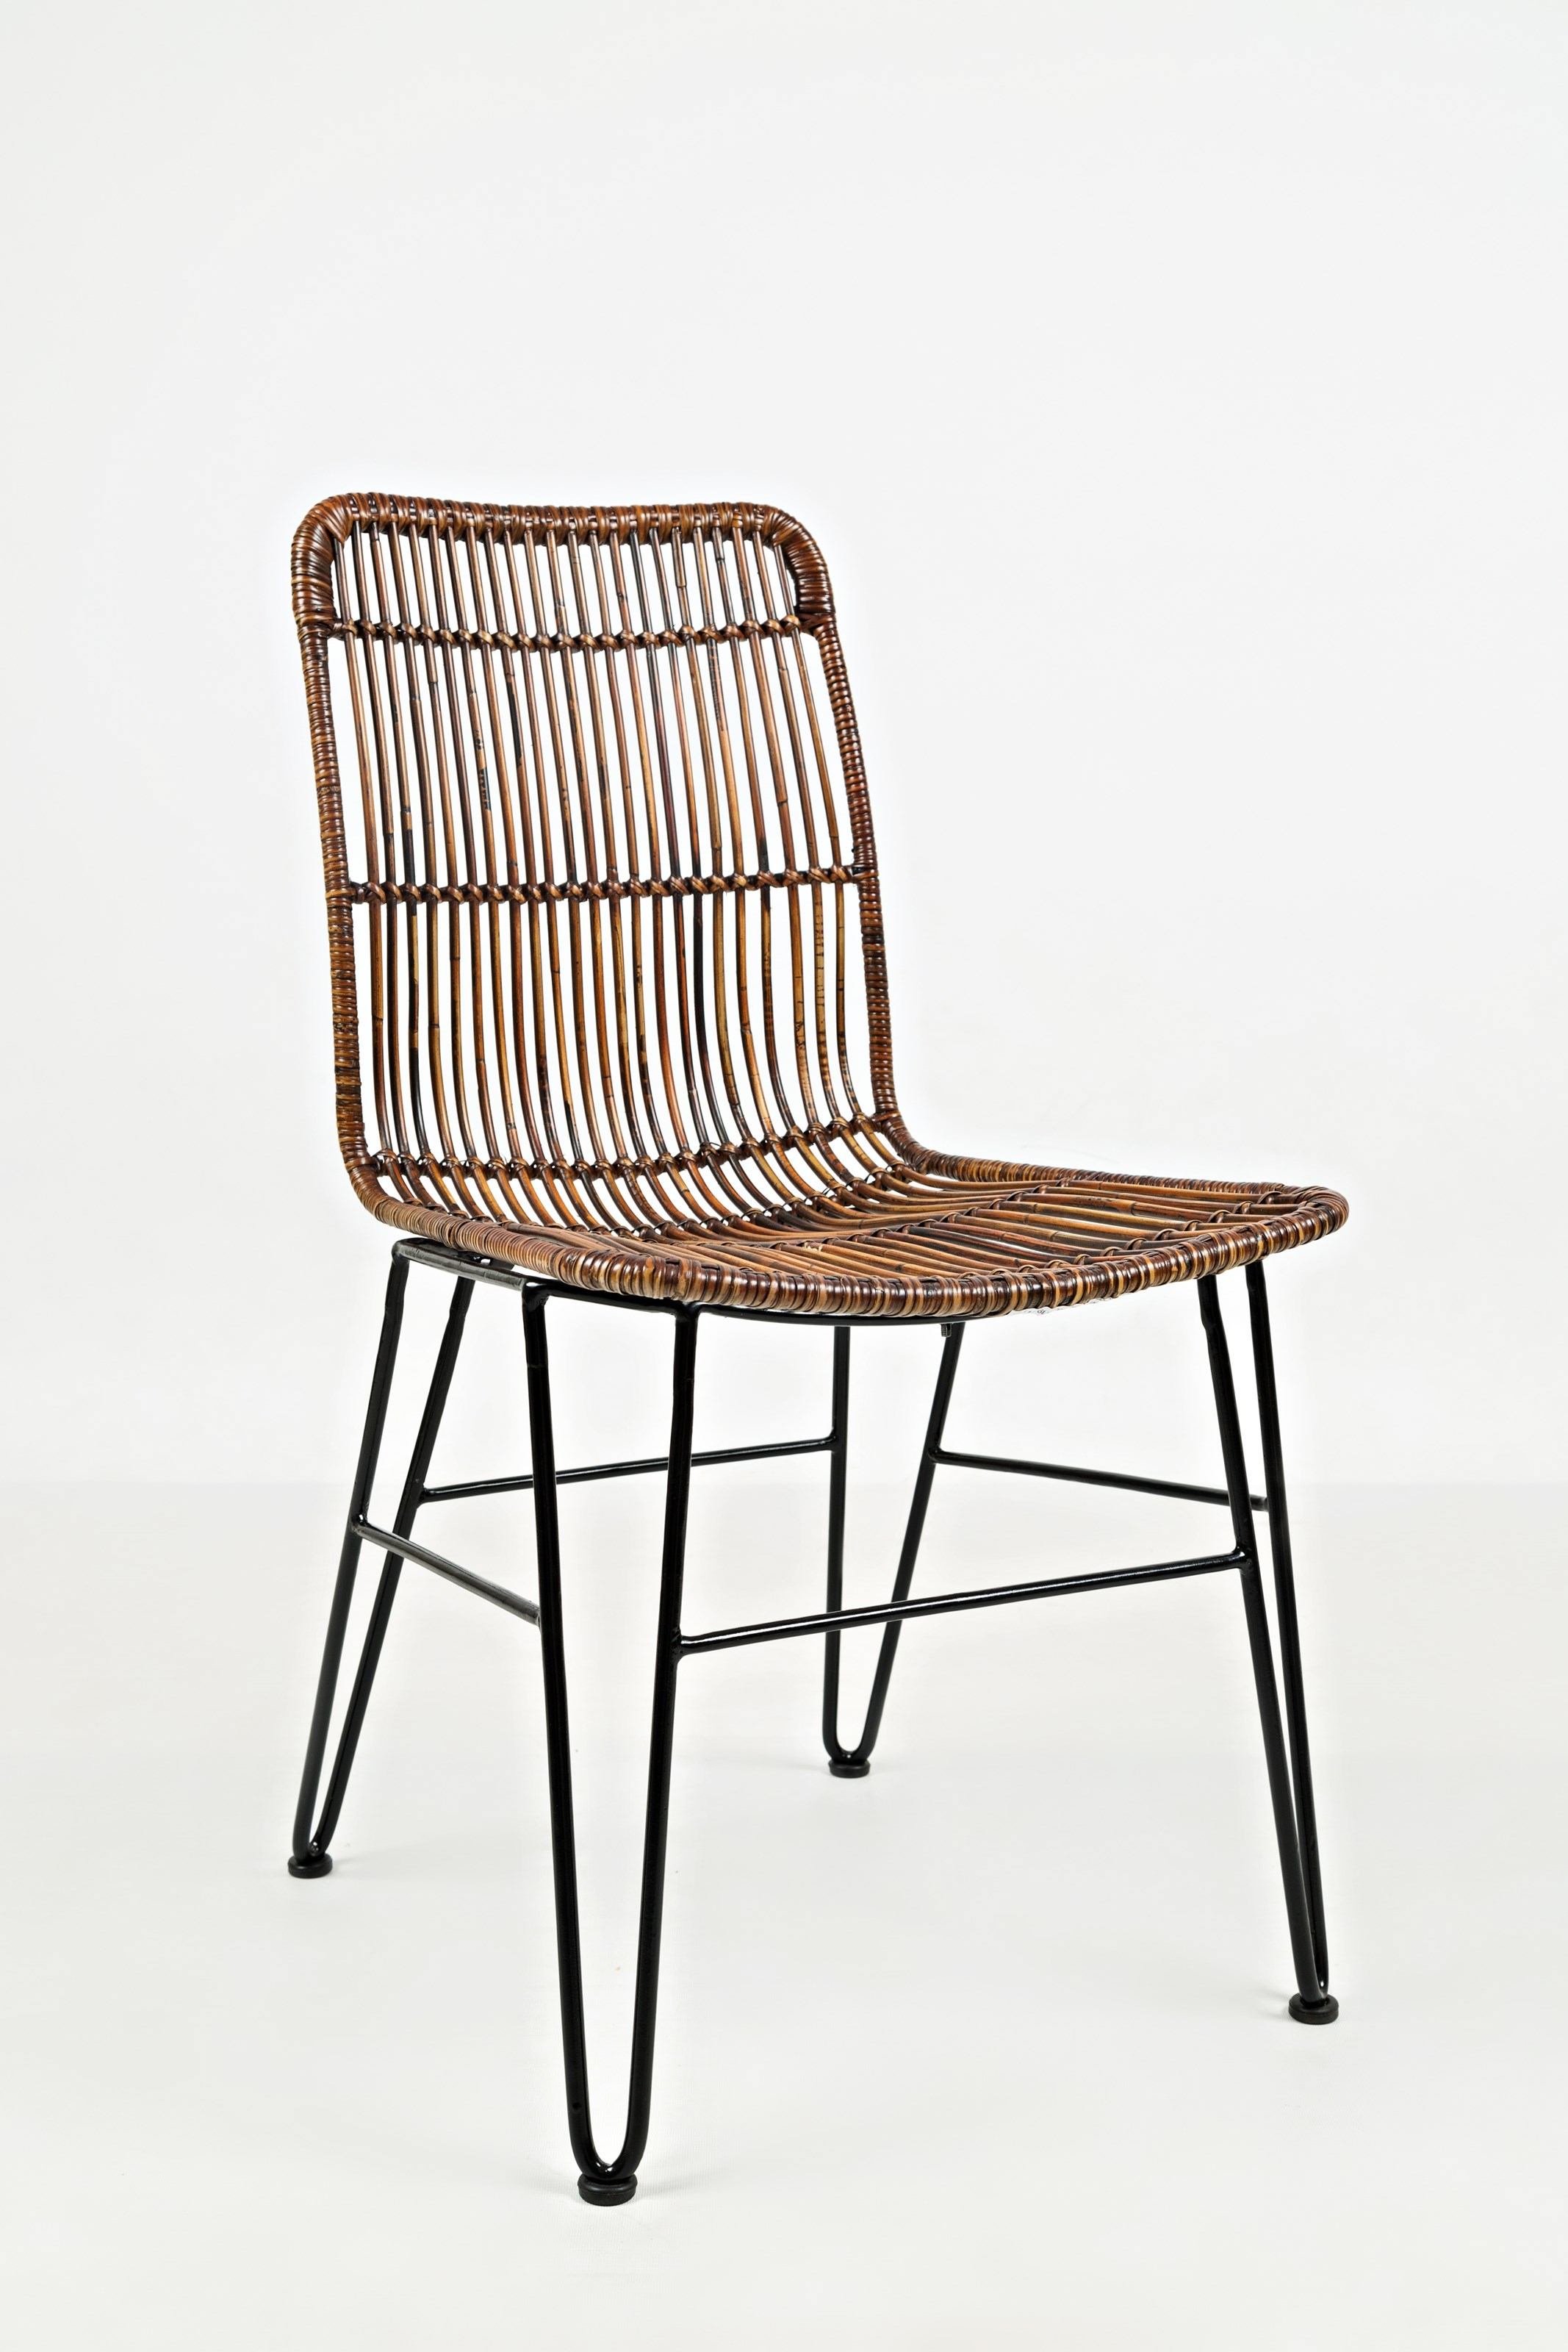 Excellent Jofran Urban Dweller Wire and Rattan Dining Chair - Jofran AY63